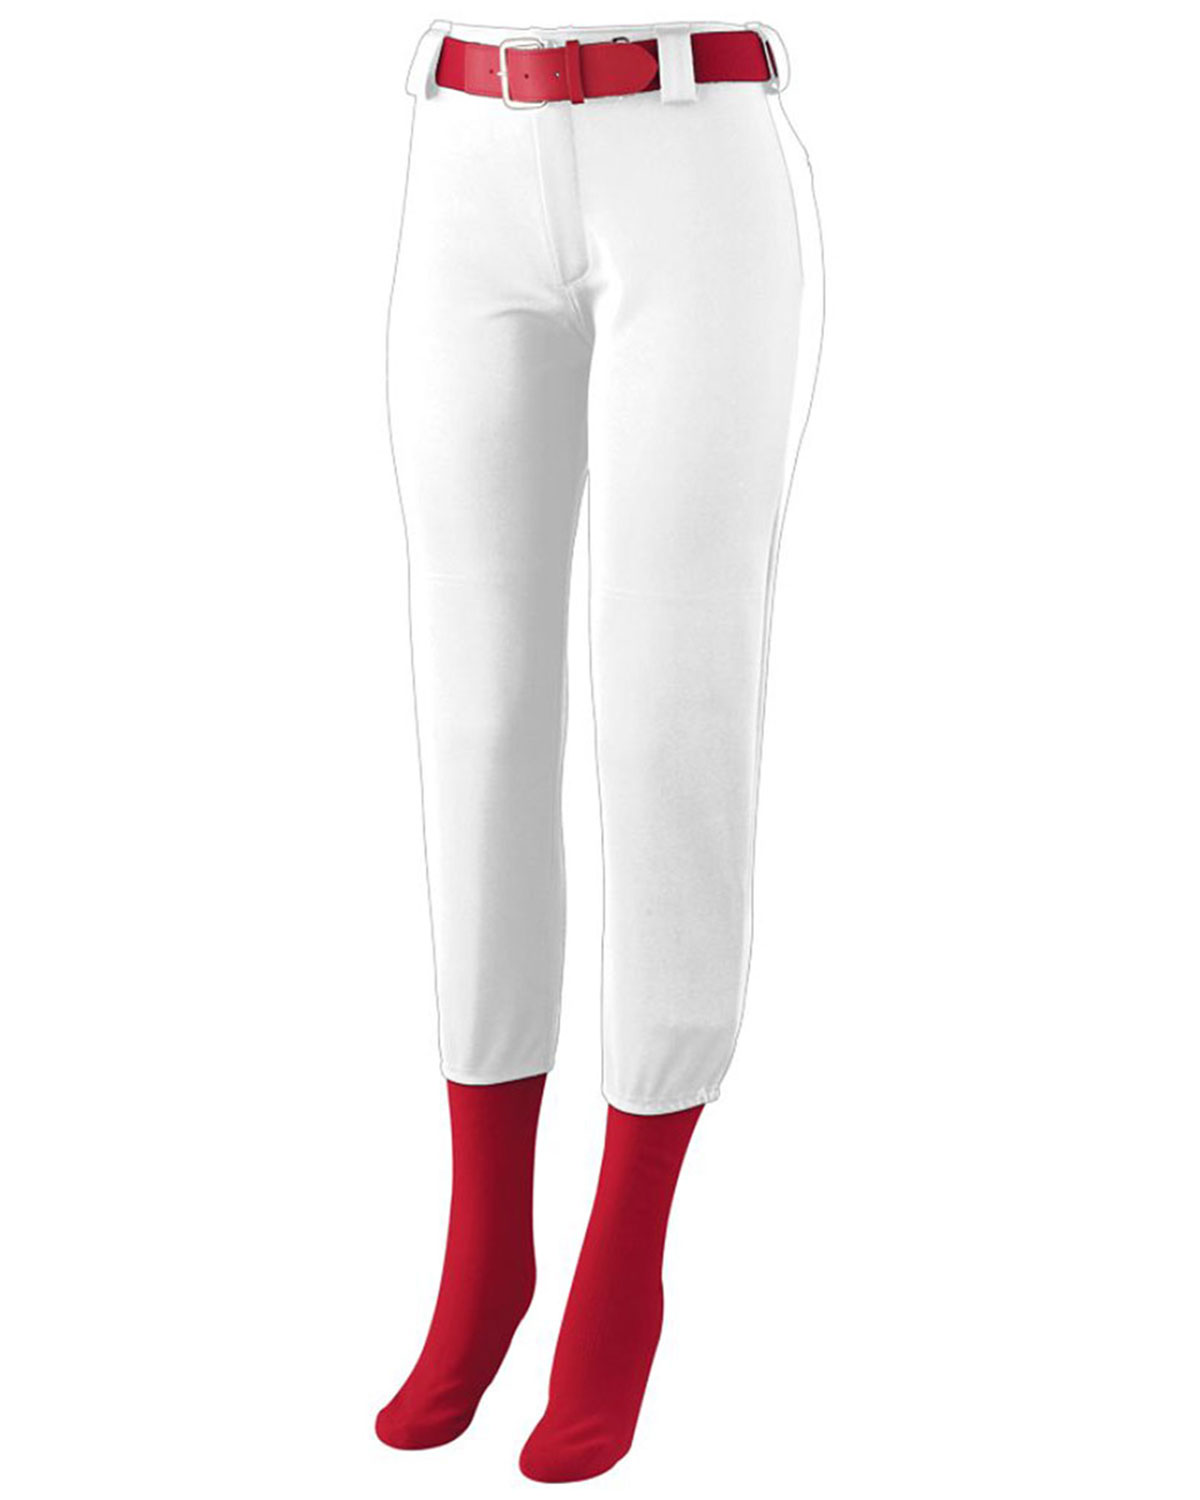 Augusta 1241 Girls Homerun Low Rise Softball Pant With Drawcord at GotApparel